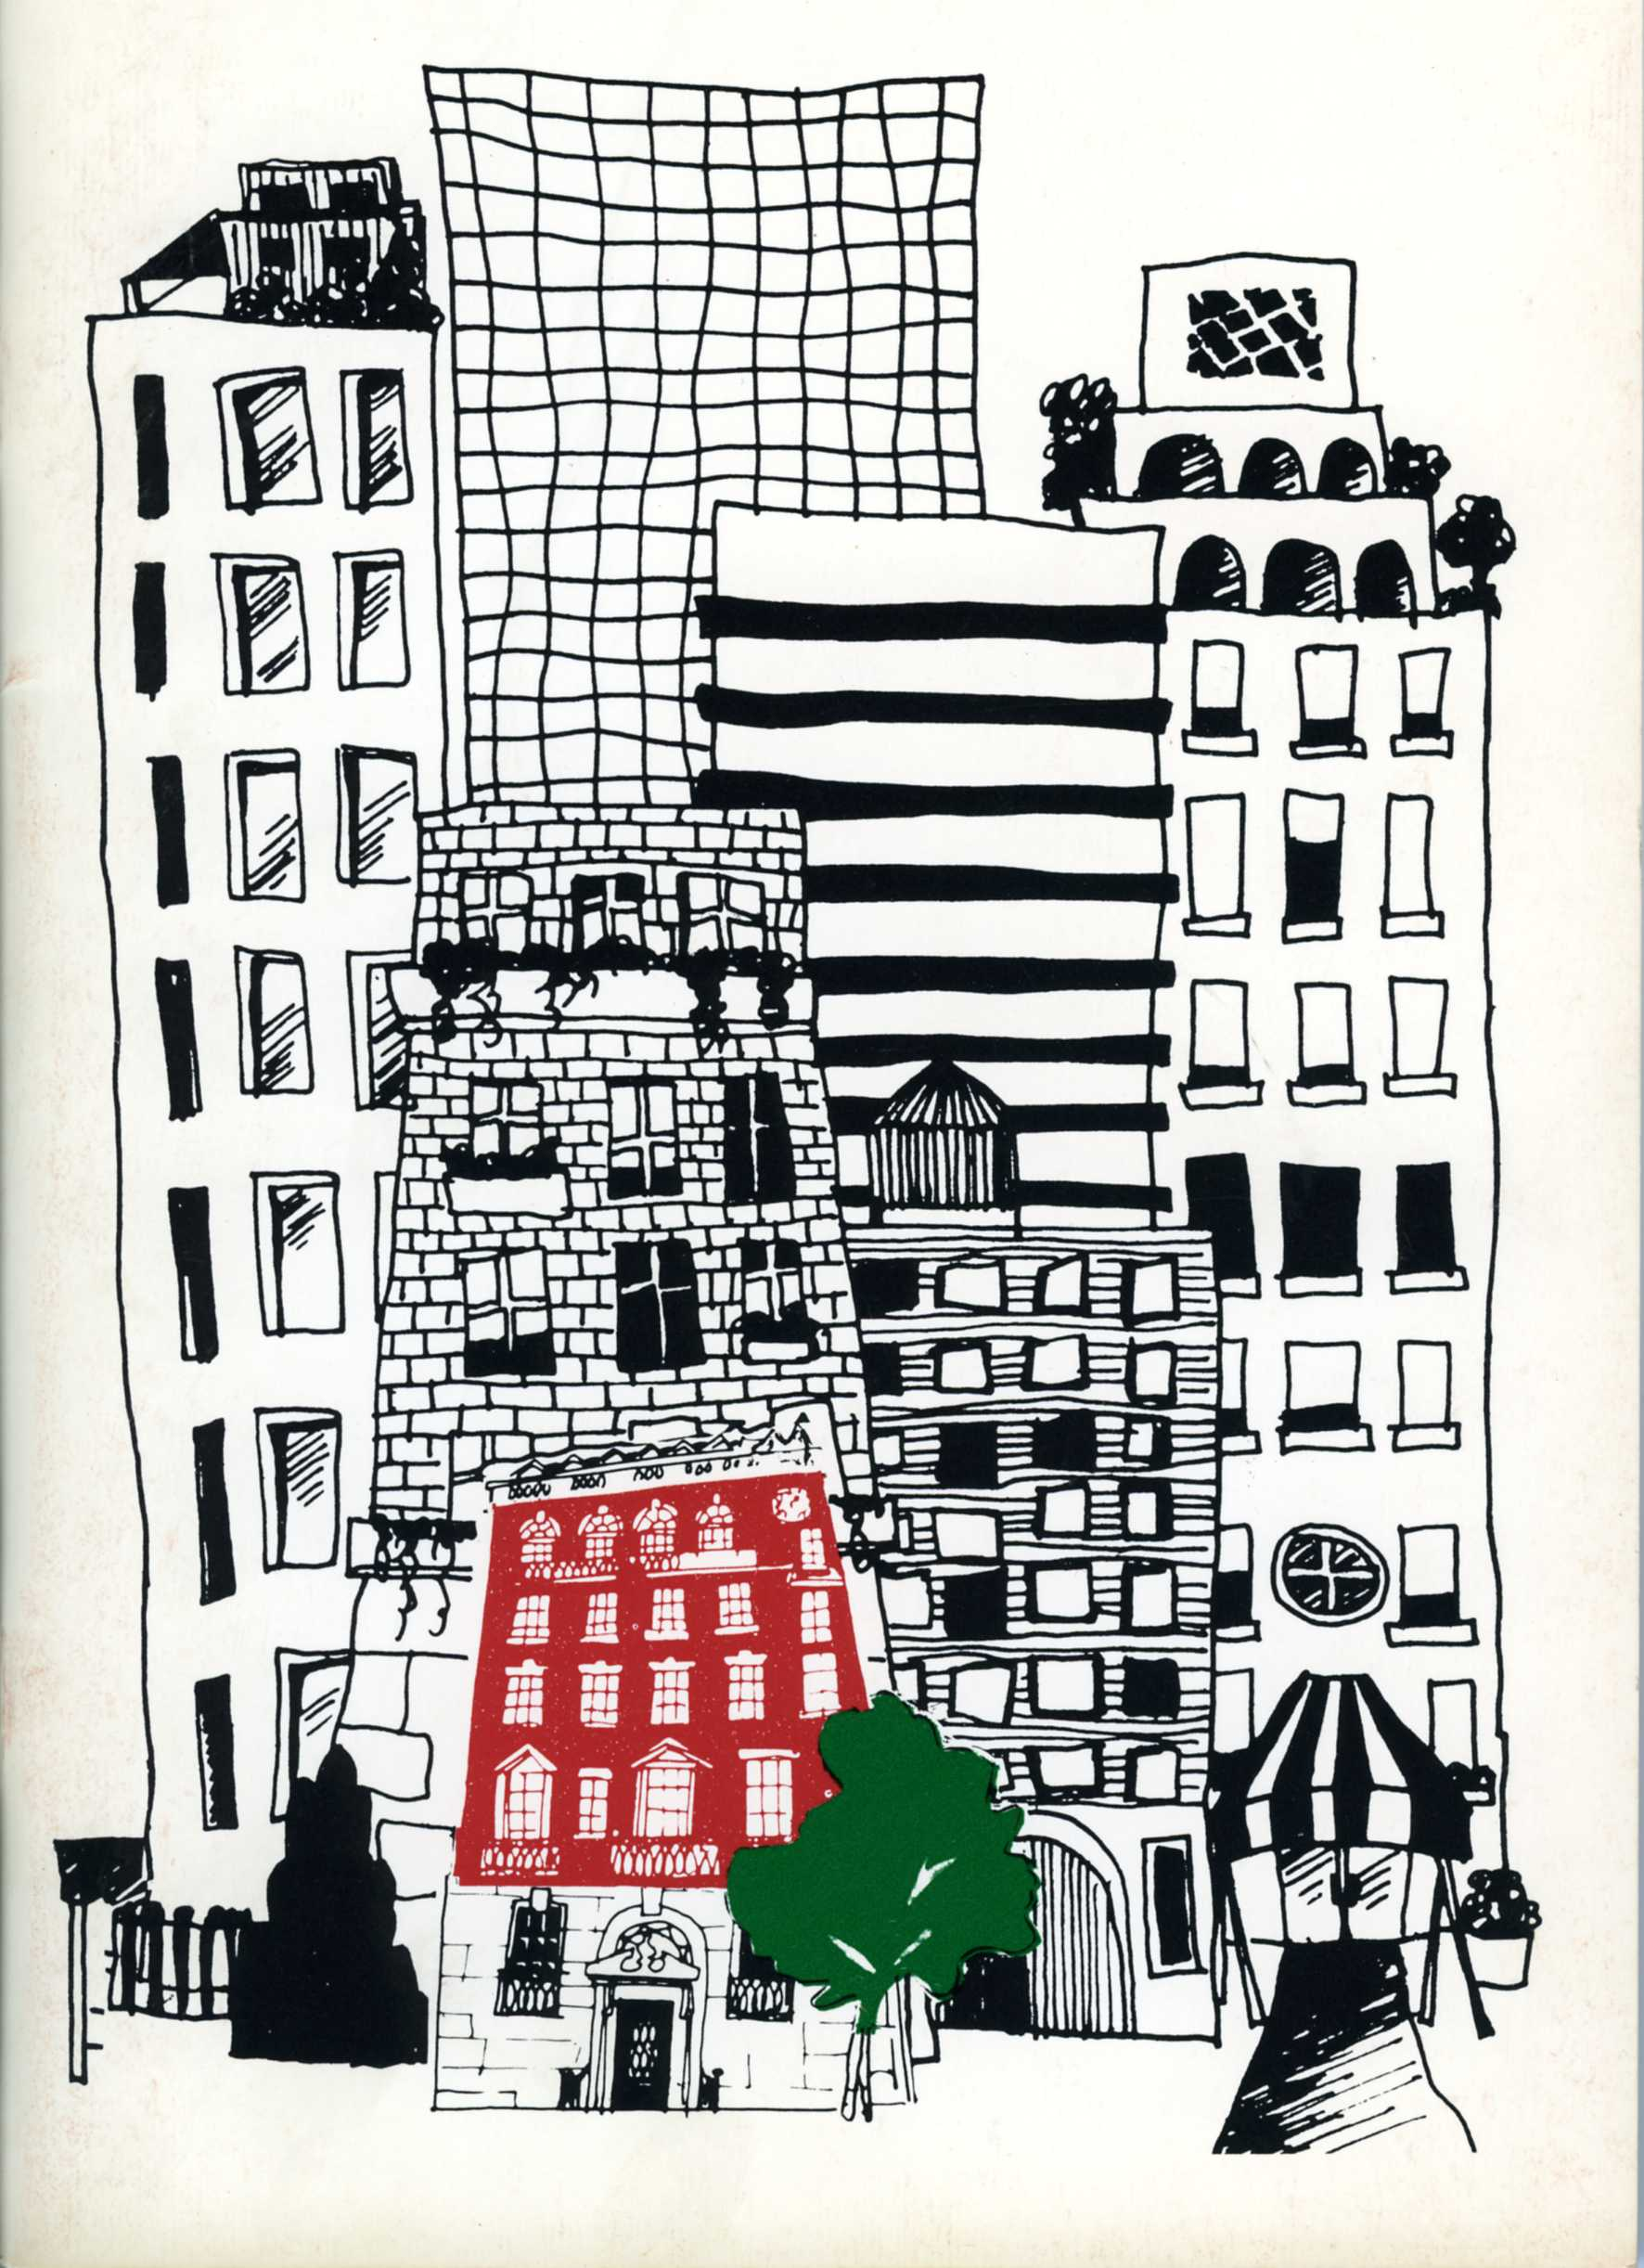 drawing of MMC's building, colored red, against background of blackl-and-white skyscrapers